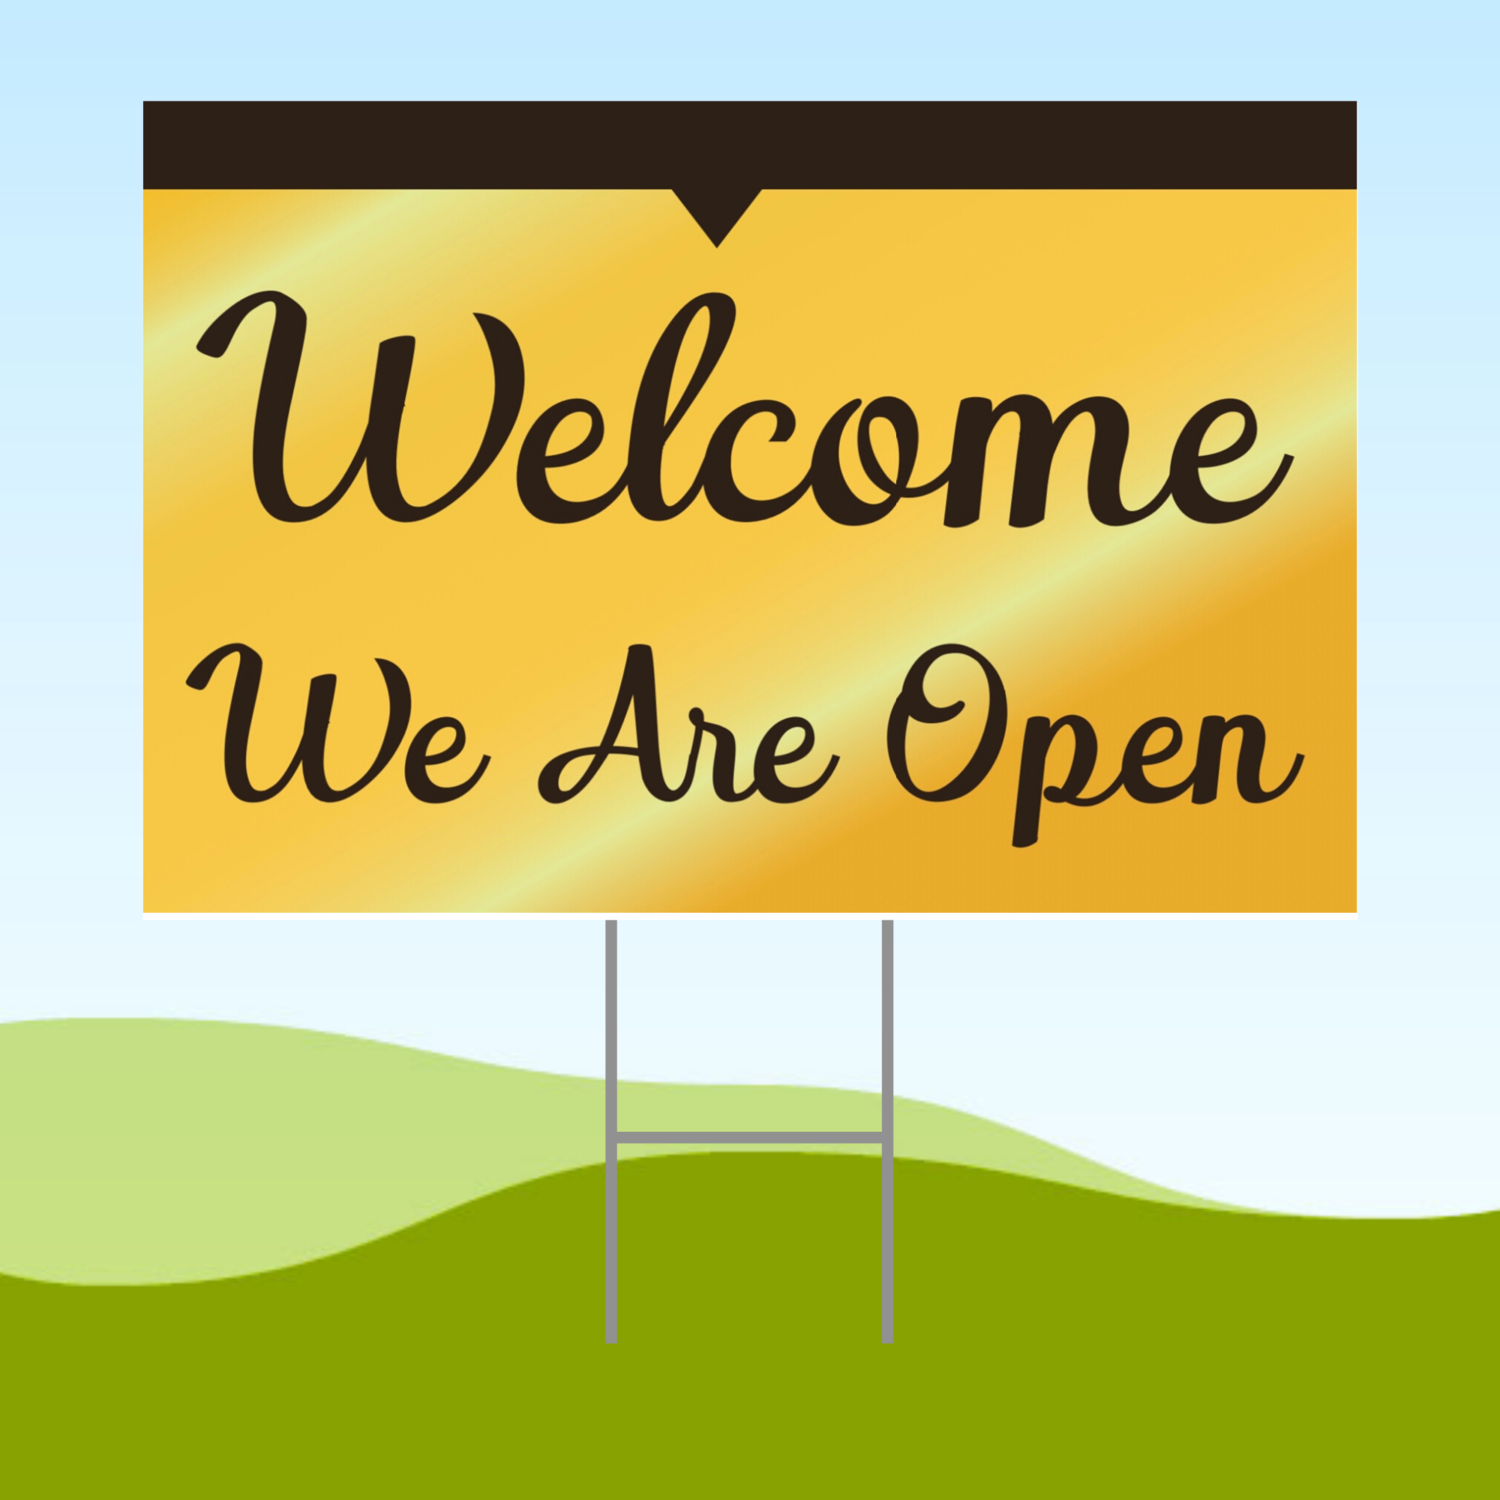 Welcome We Are Open 18x24 Yard Sign WITH STAKE Corrugated Plastic Bandit